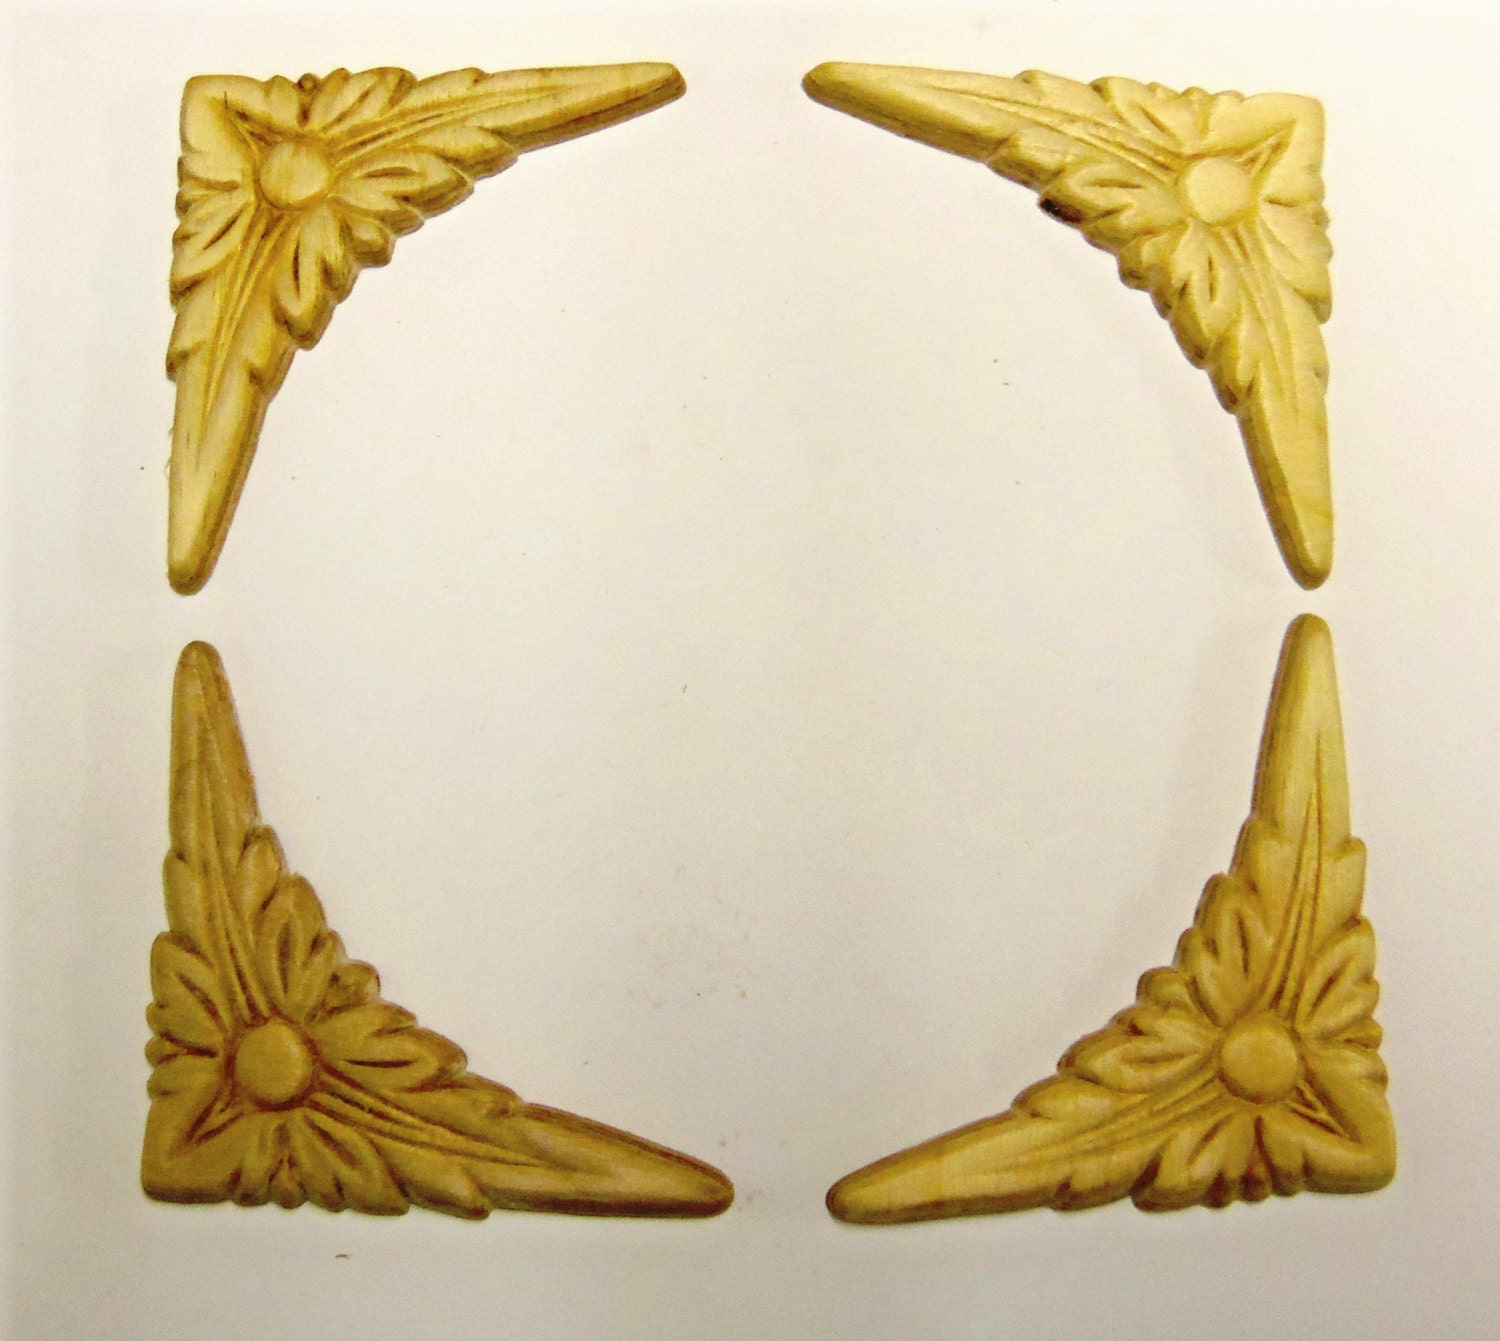 Wood Appliques lays Set of 4 Corners Birch Embossed